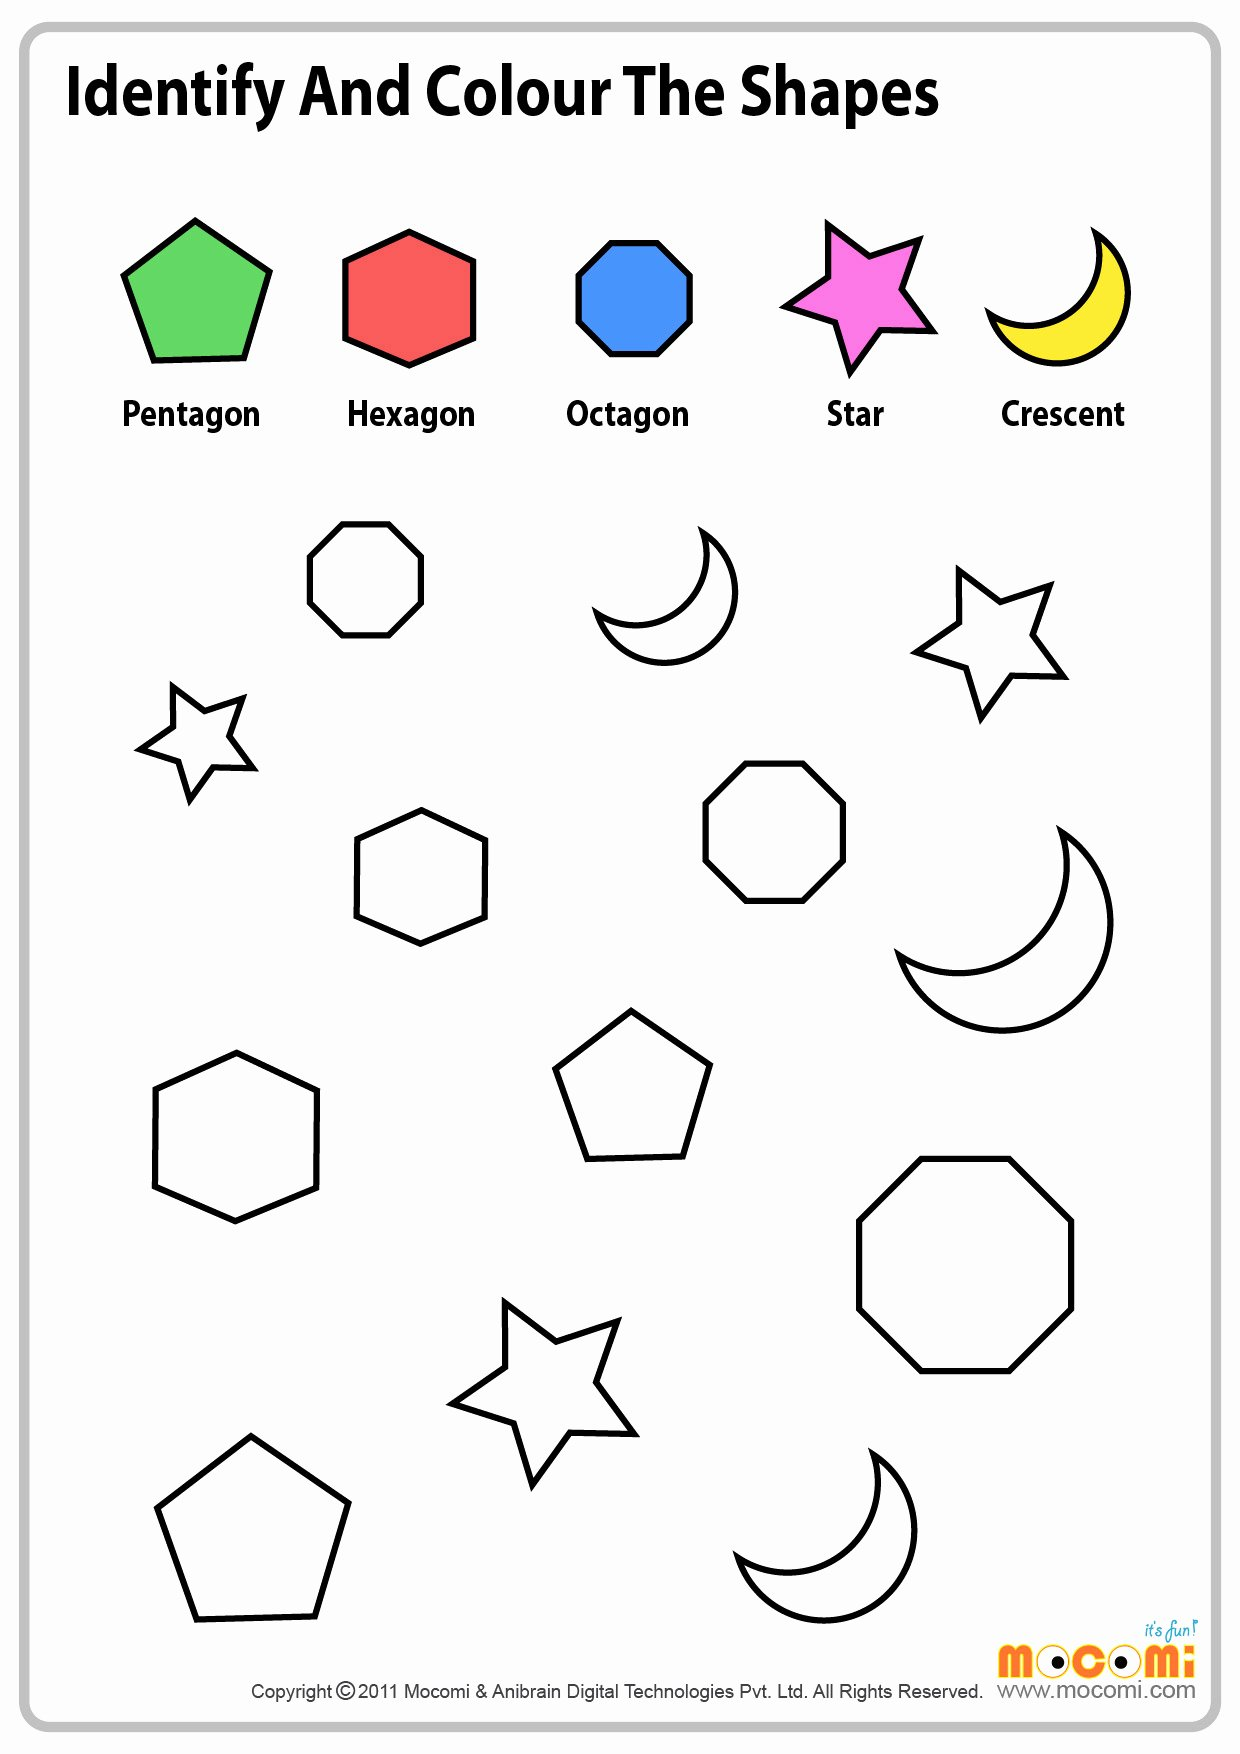 Crescent Shape Worksheets for Preschoolers Fresh Colour Similar Shapes Maths Worksheet for Kids Mo I